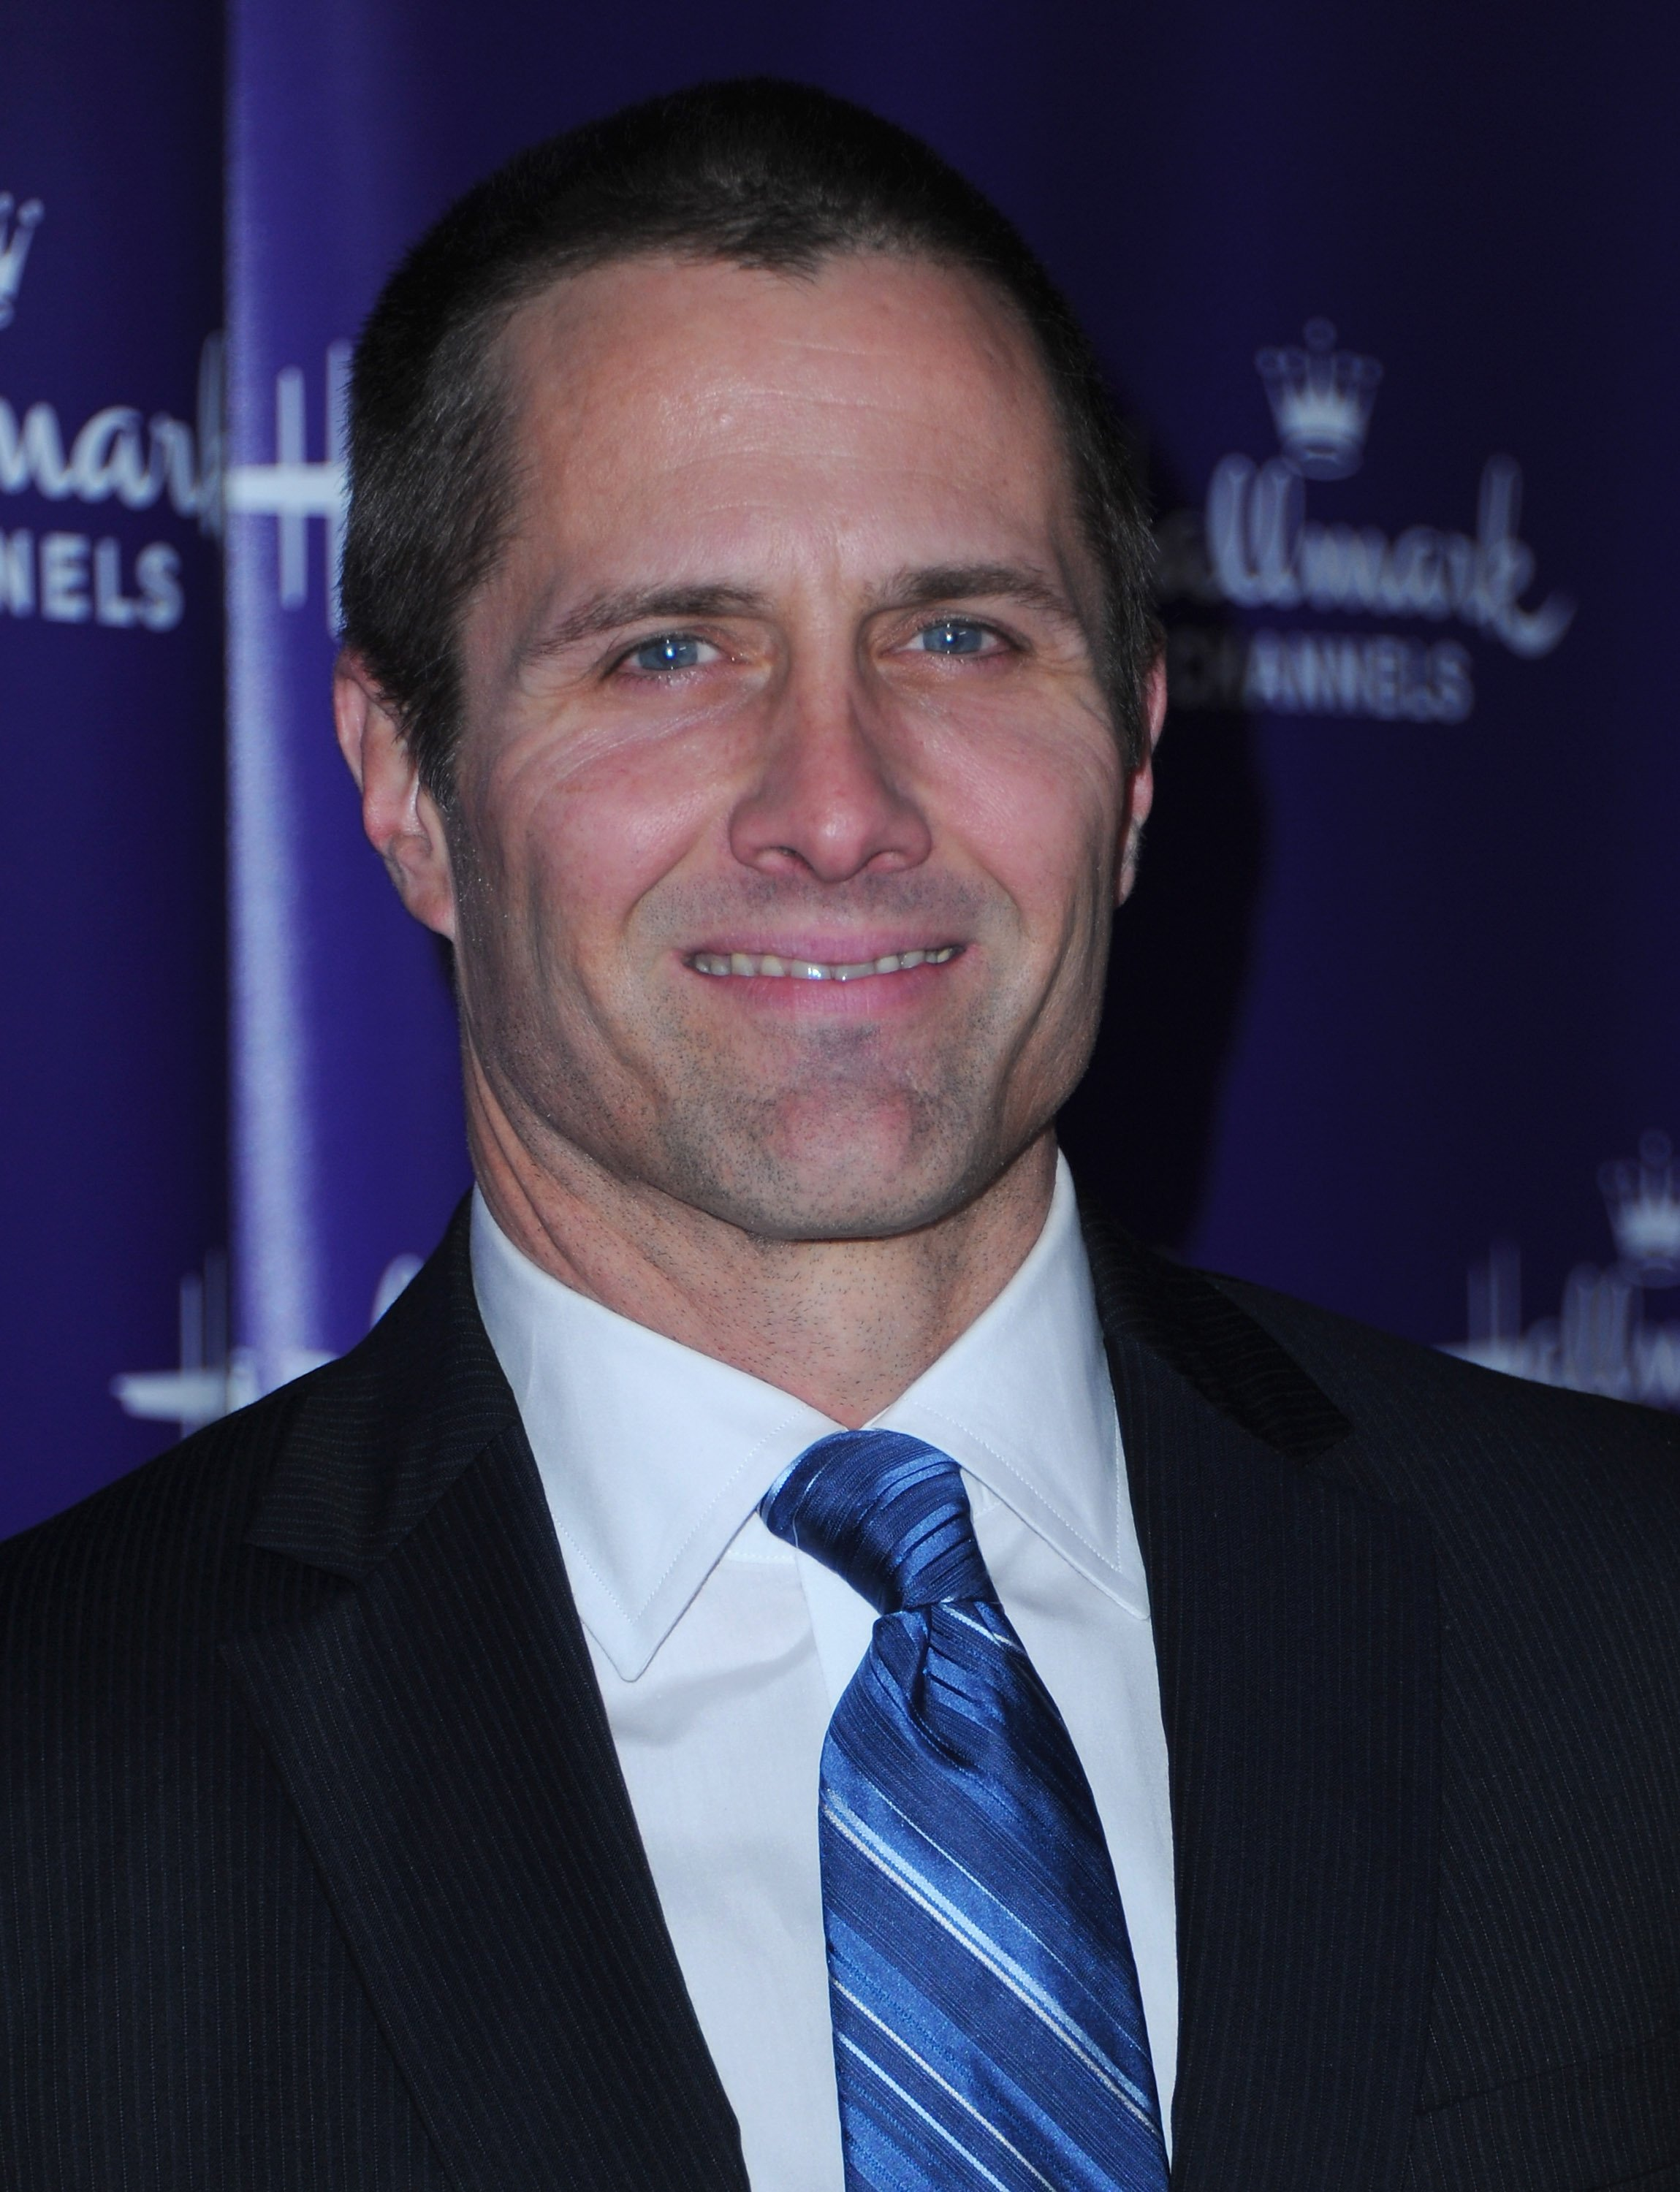 Rob Estes arrives to Hallmark Channel's 2011 TCA Winter Tour Evening Gala on January 7, 2011, in Pasadena, California. | Source: Getty Images.